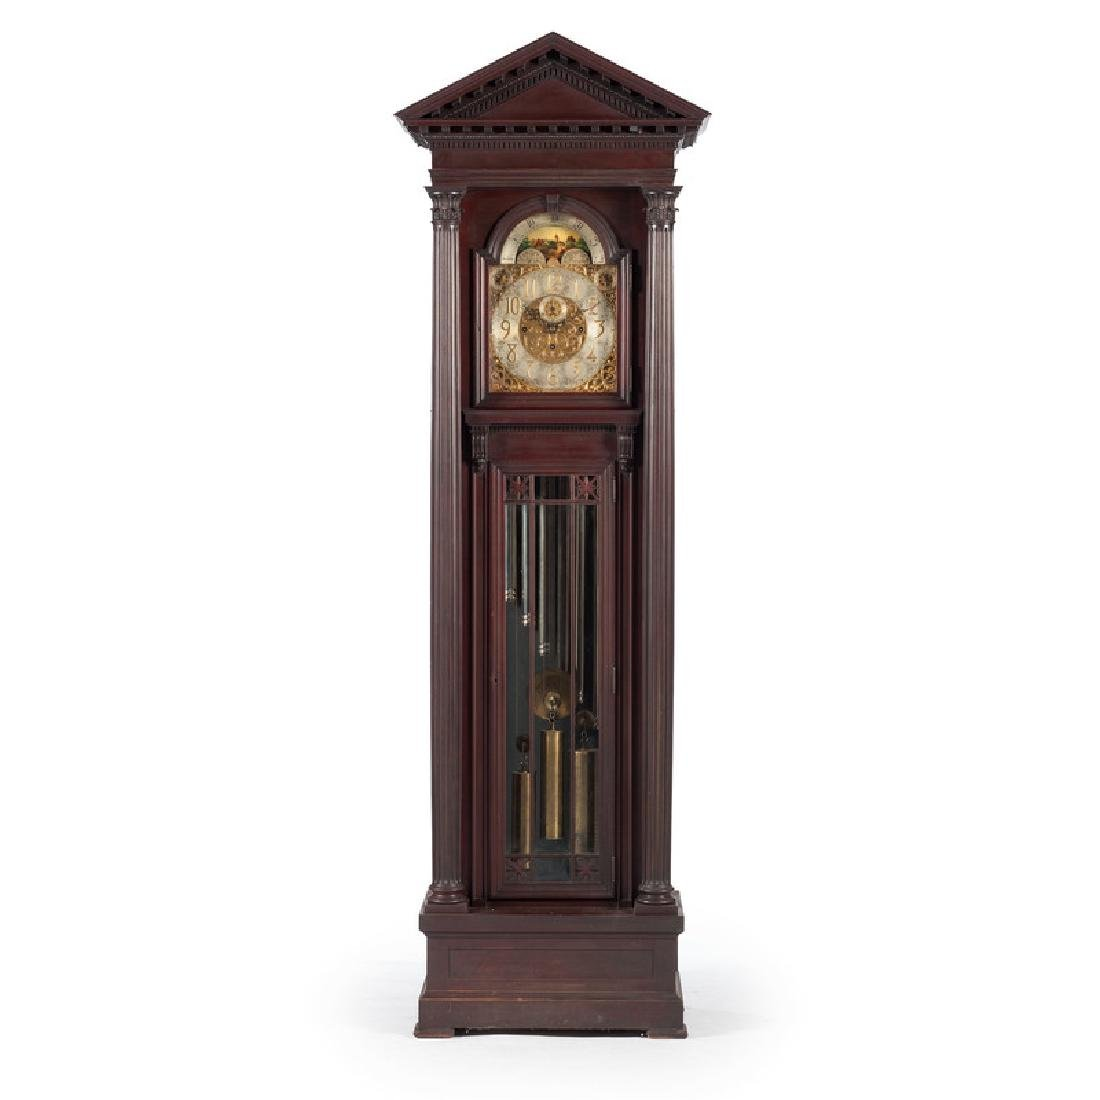 Herschede No. 122 Nine-Tube Tall Case Clock